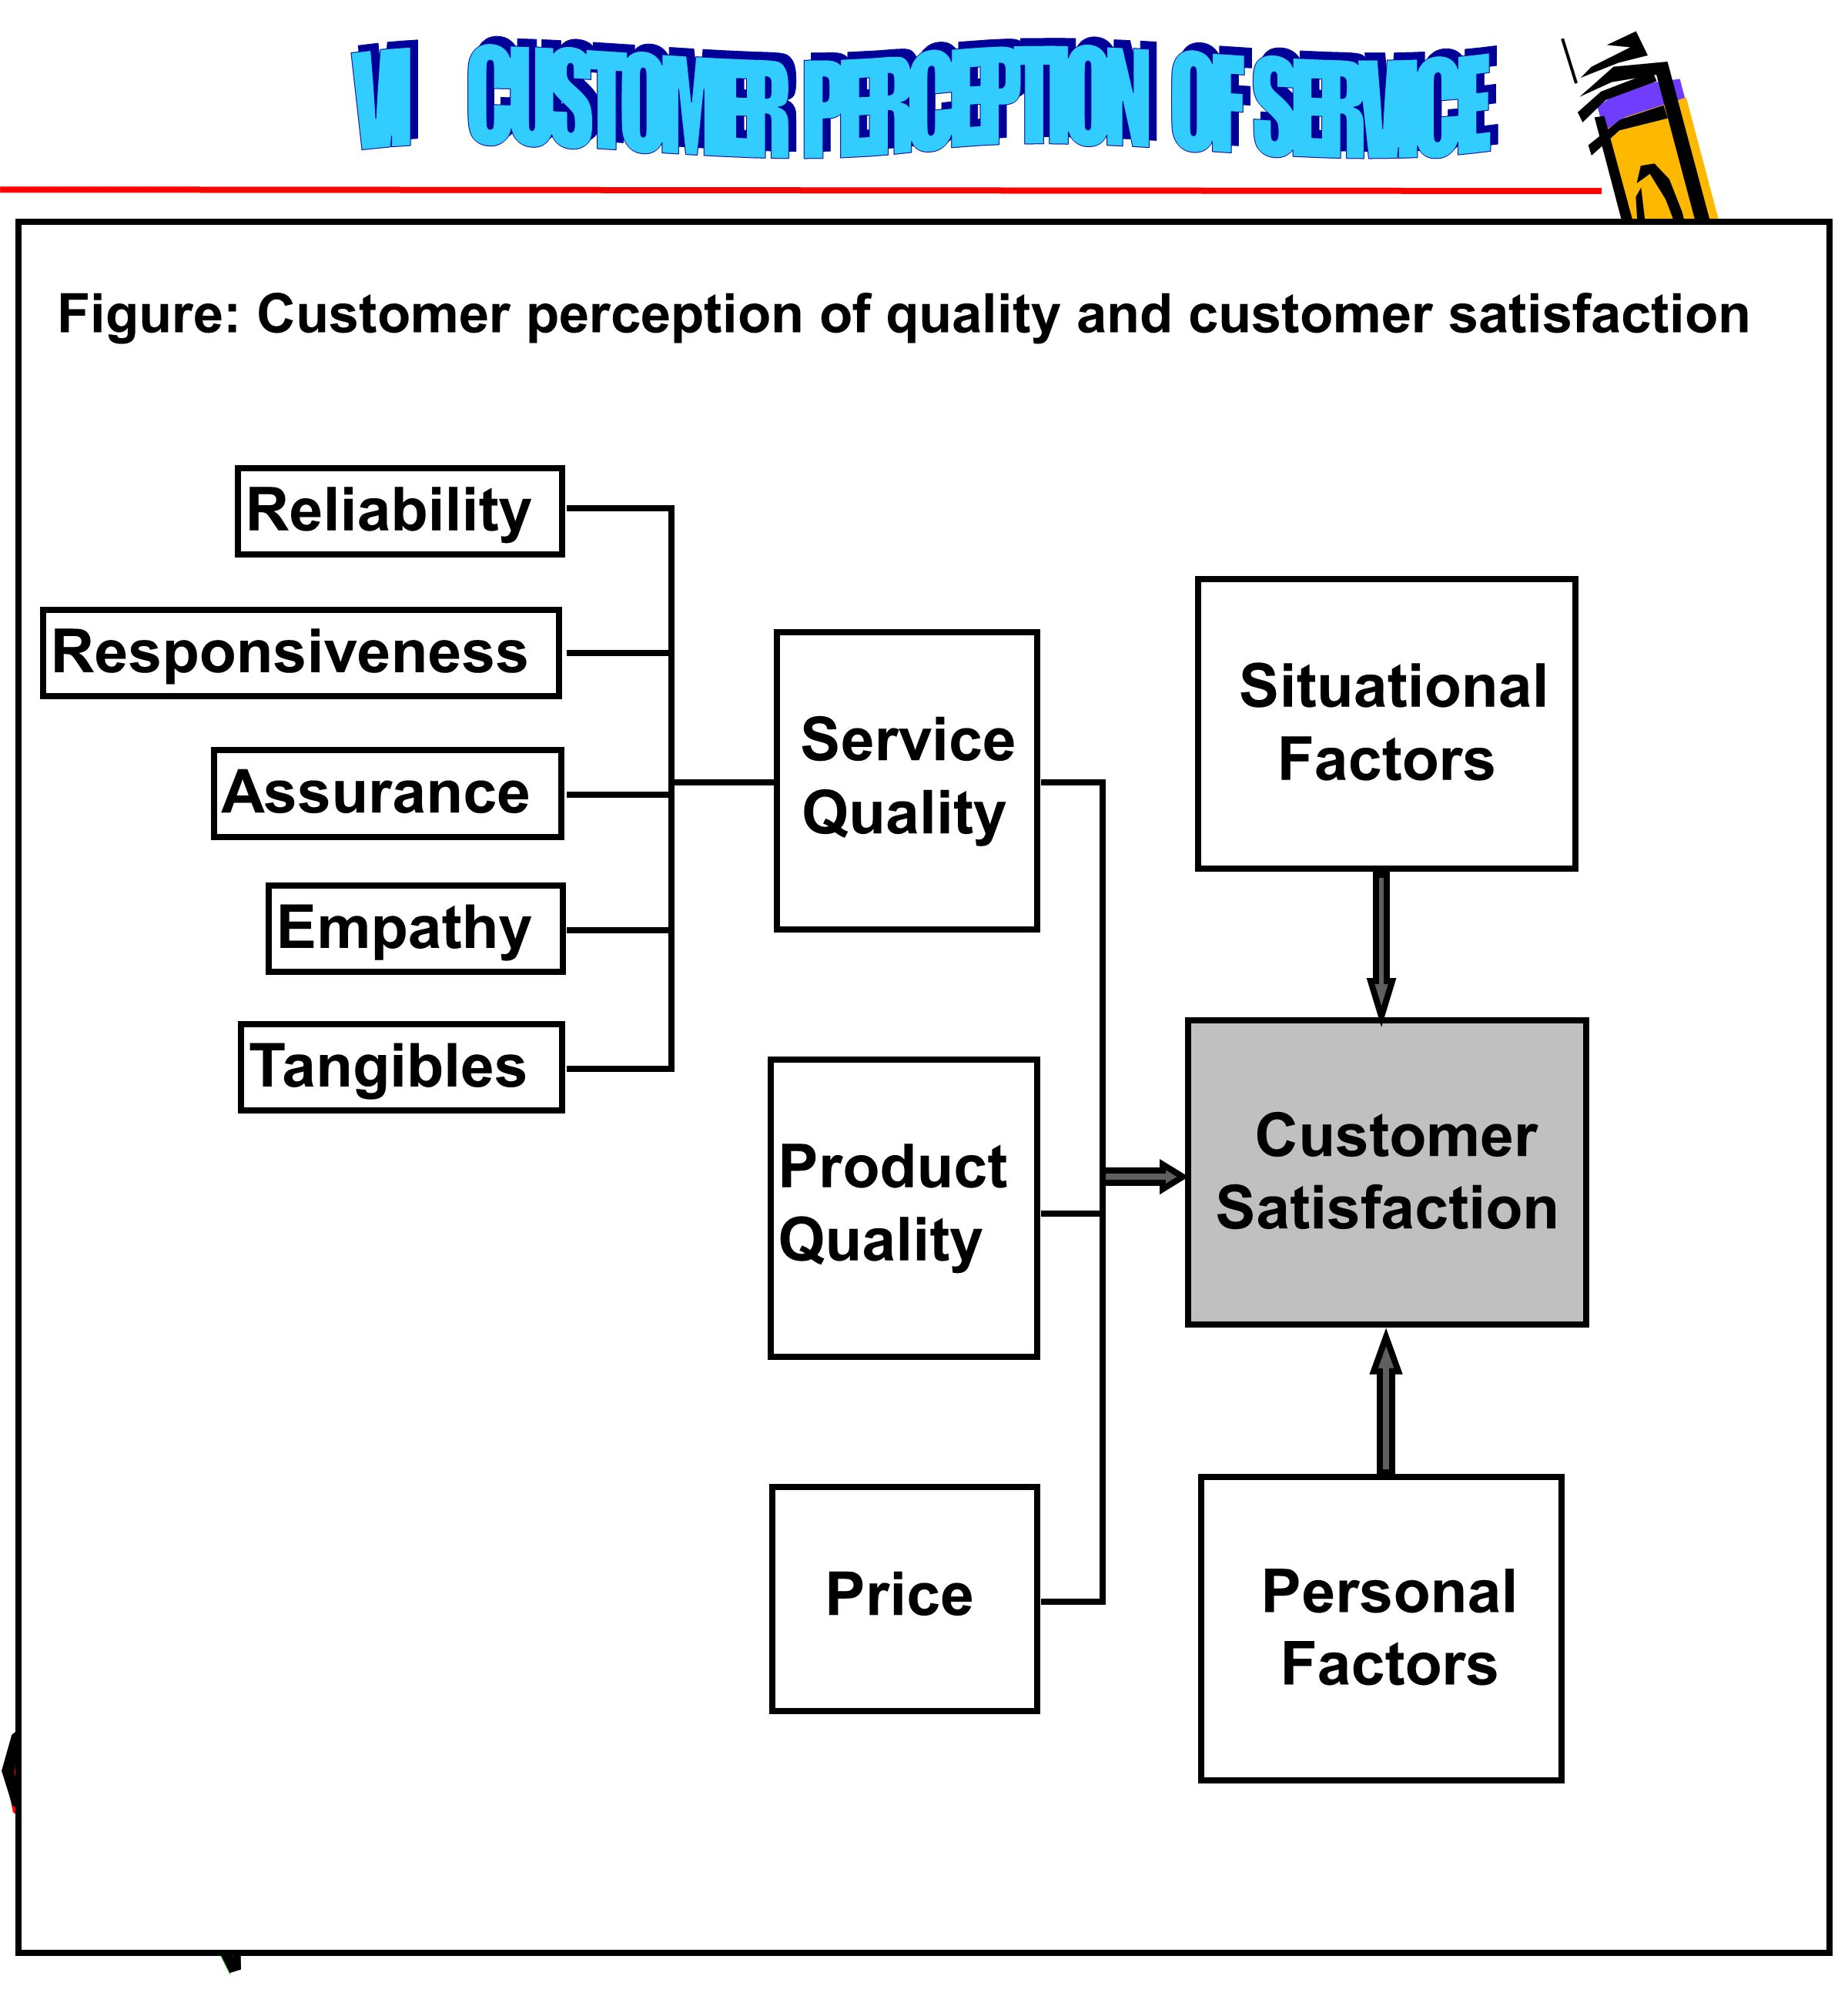 VI CUSTOMER PERCEPTION OF SERVICE